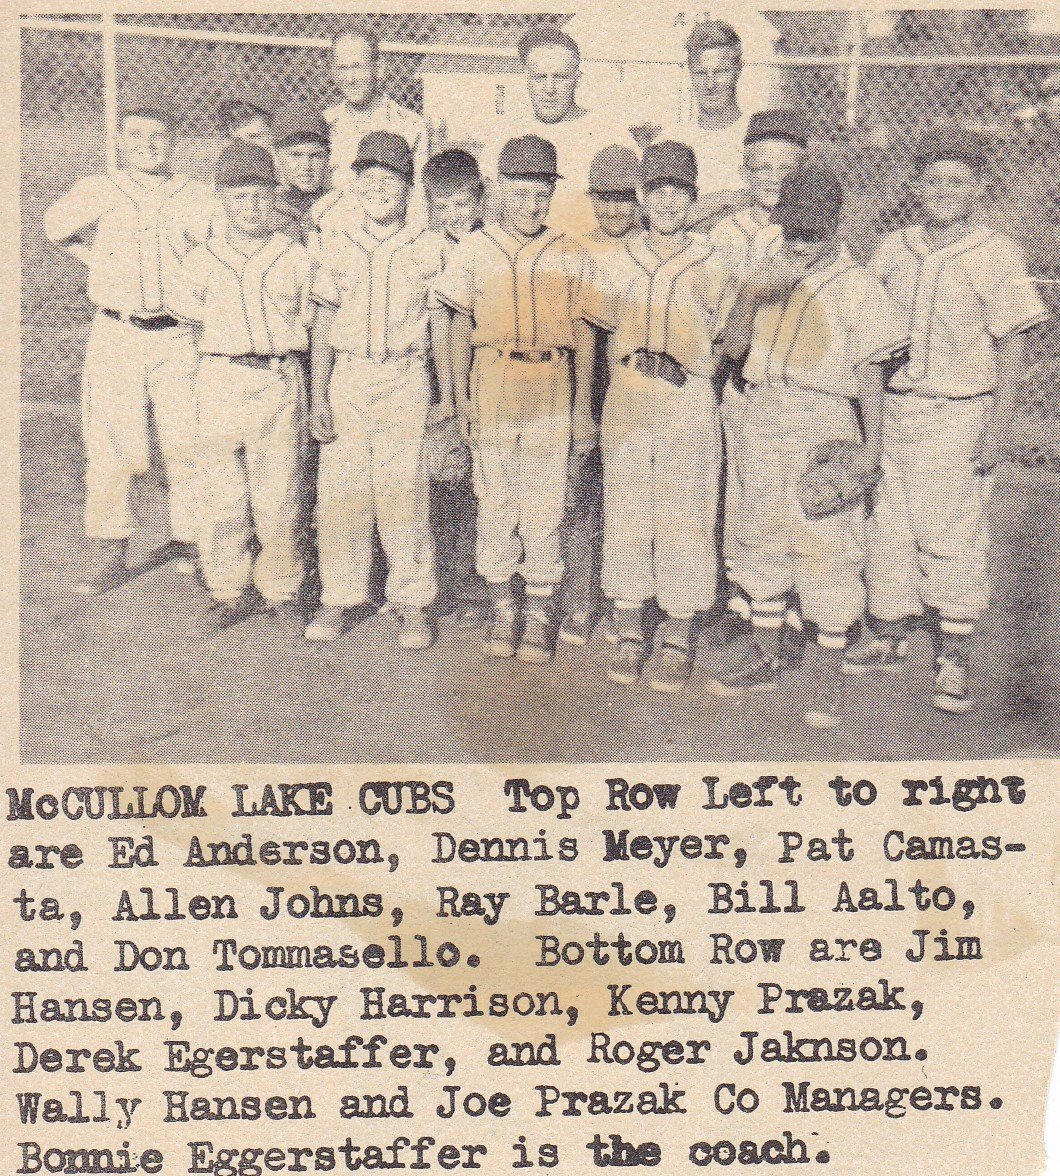 The McCullom Lake Cubs From 1959.